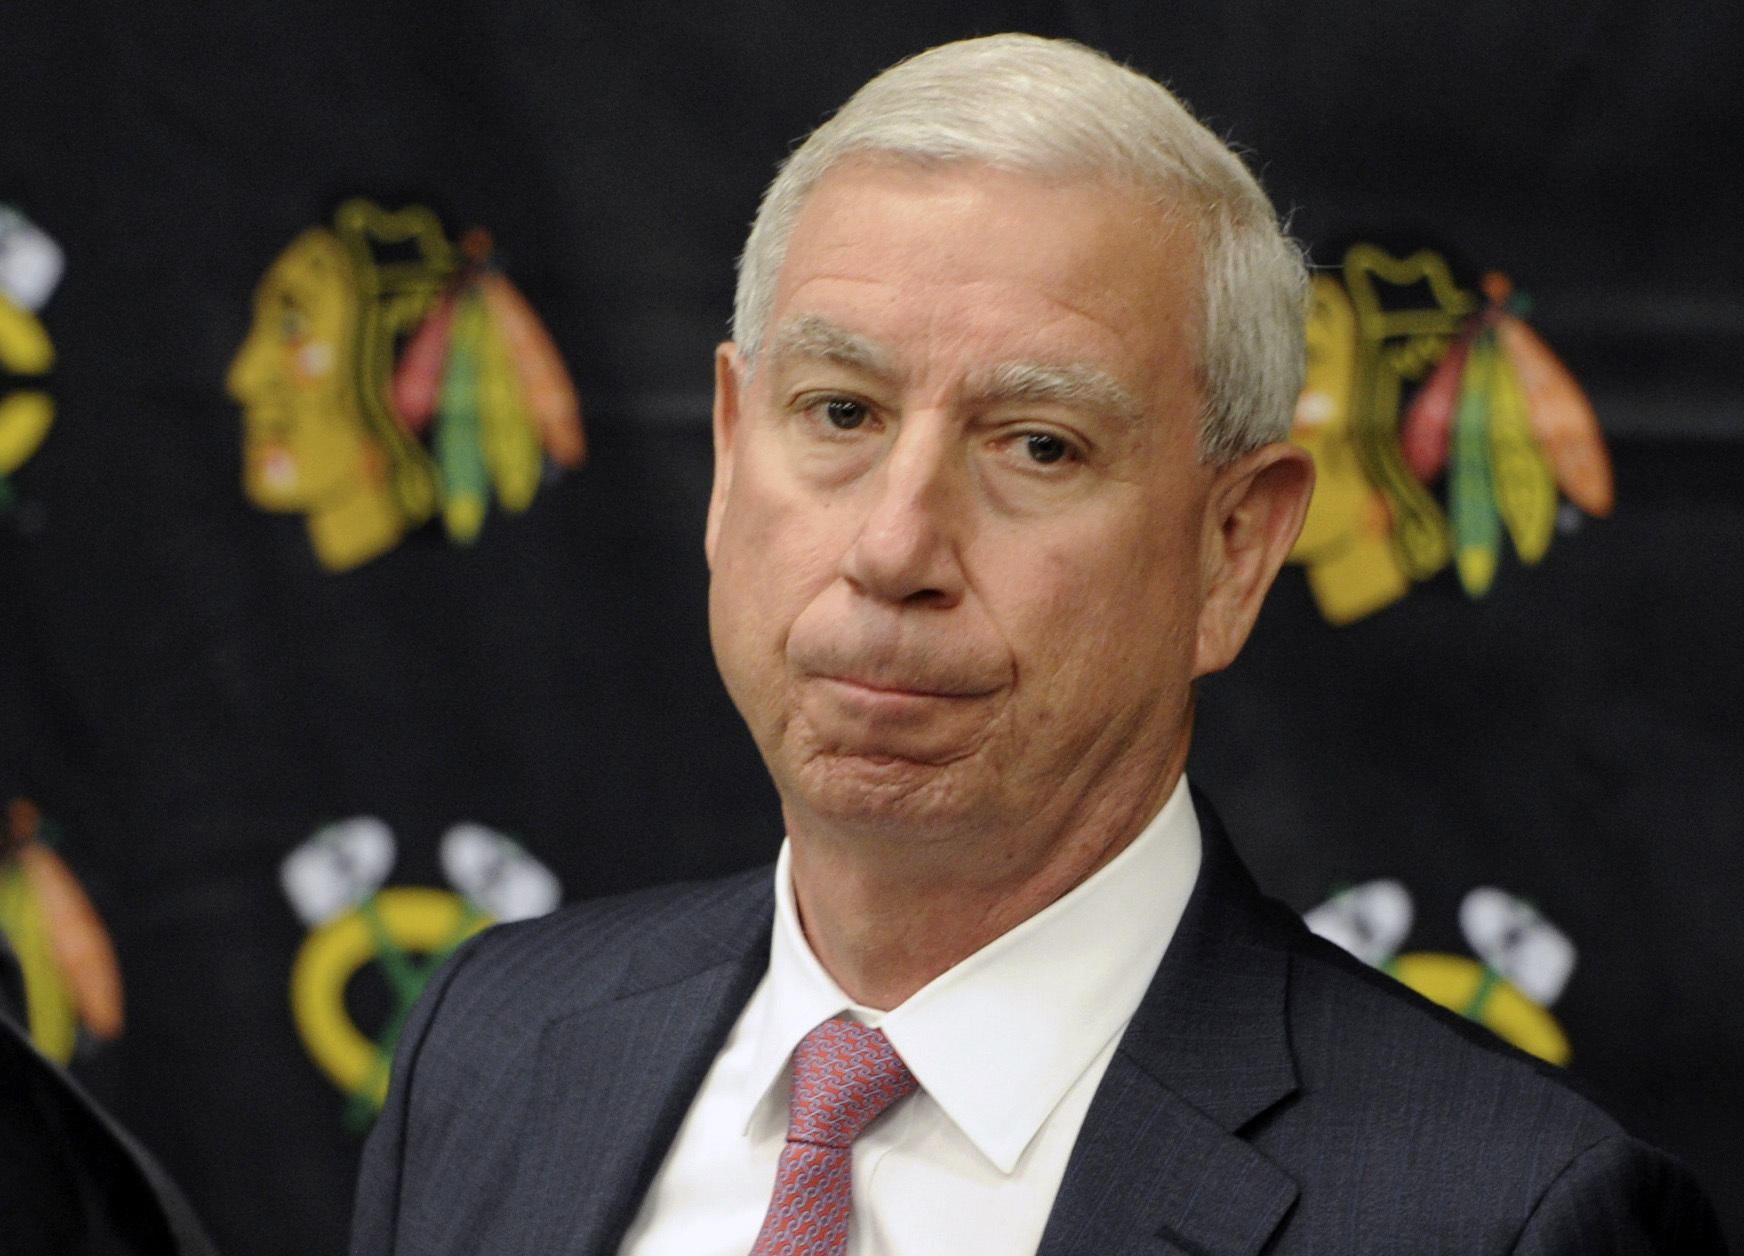 """""""I wish Danny Wirtz well in his new role, and I am confident the organization will have success in the search for a new president,"""" John McDonough said in a statement."""